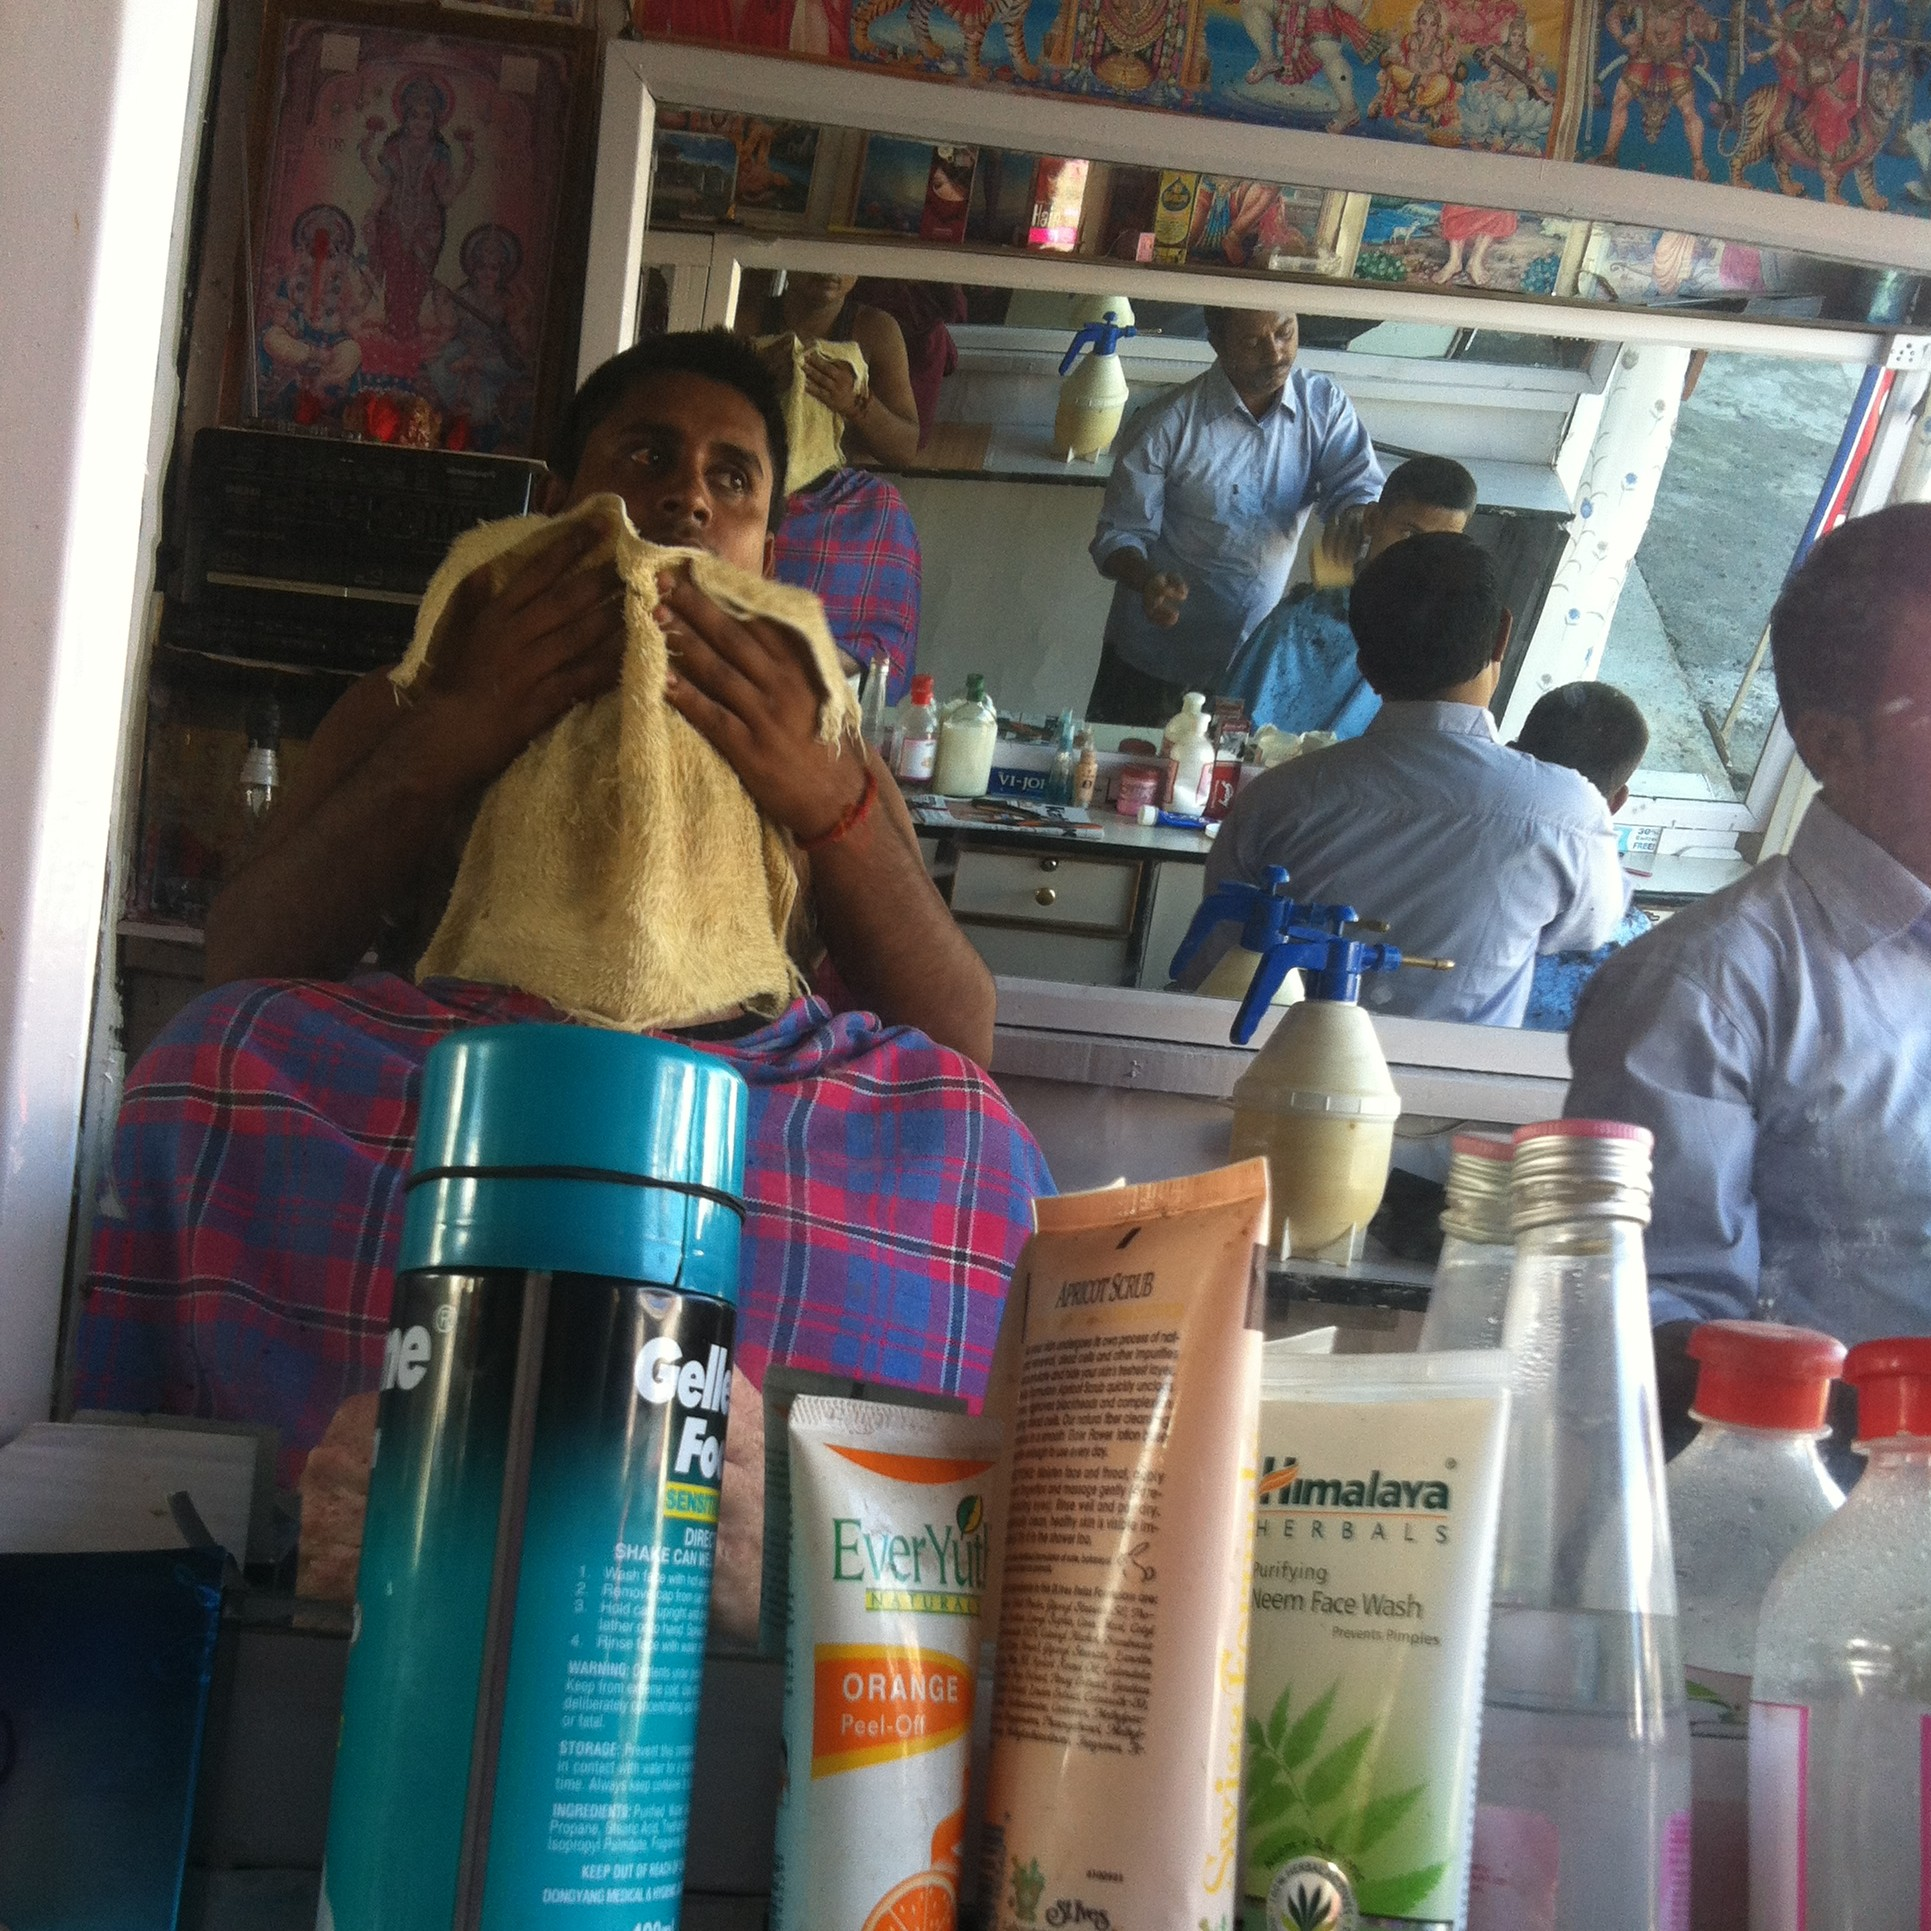 Inside the Pokhara barber shop